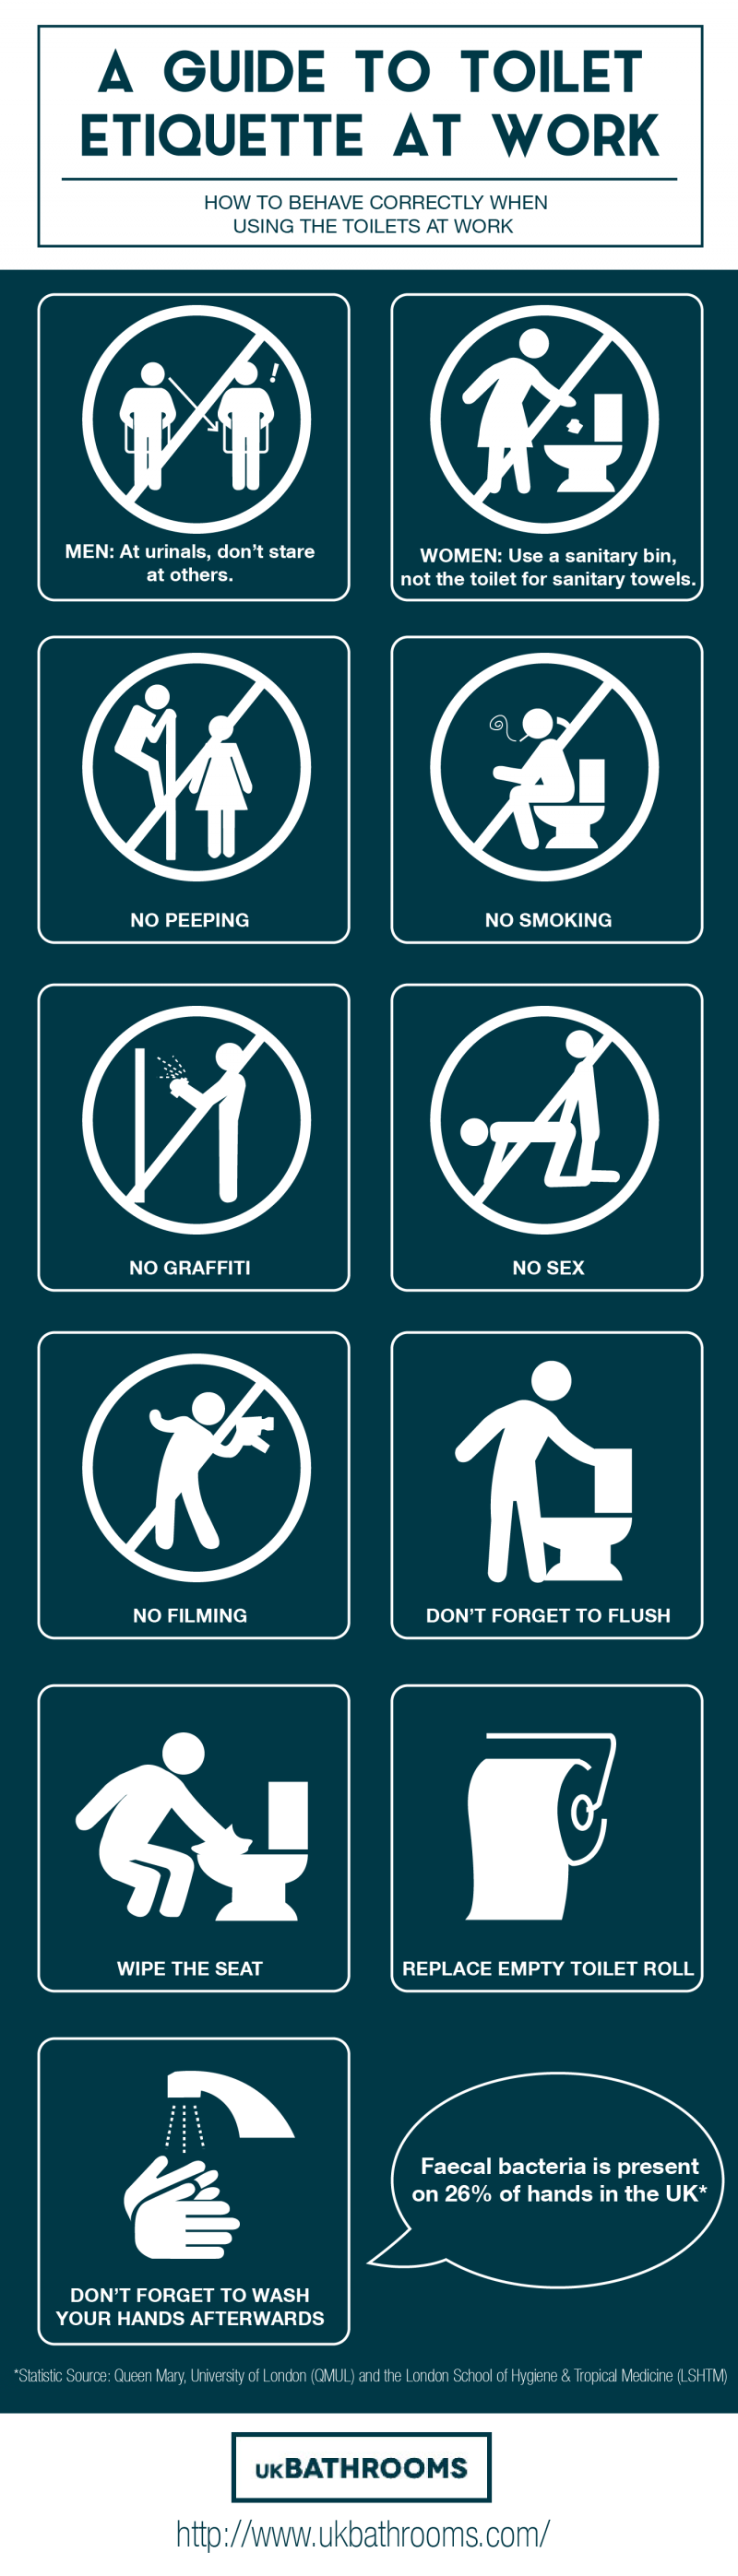 A Guide to Toilet Etiquette at Work - UK Bathrooms